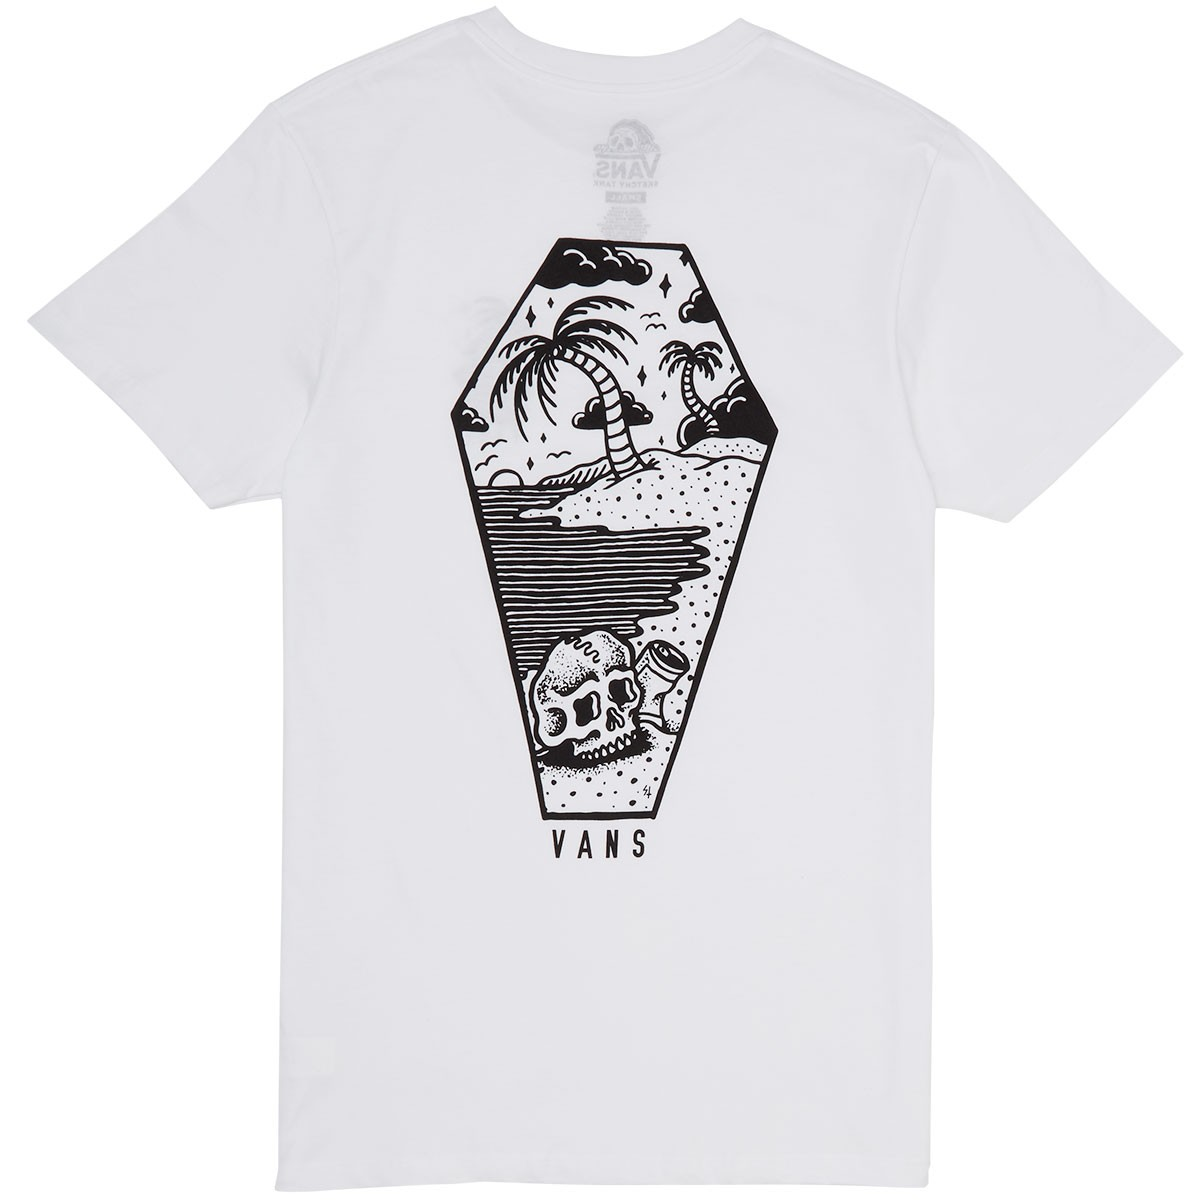 Vans X Sketchy Tank Sketched Out T-Shirt - White